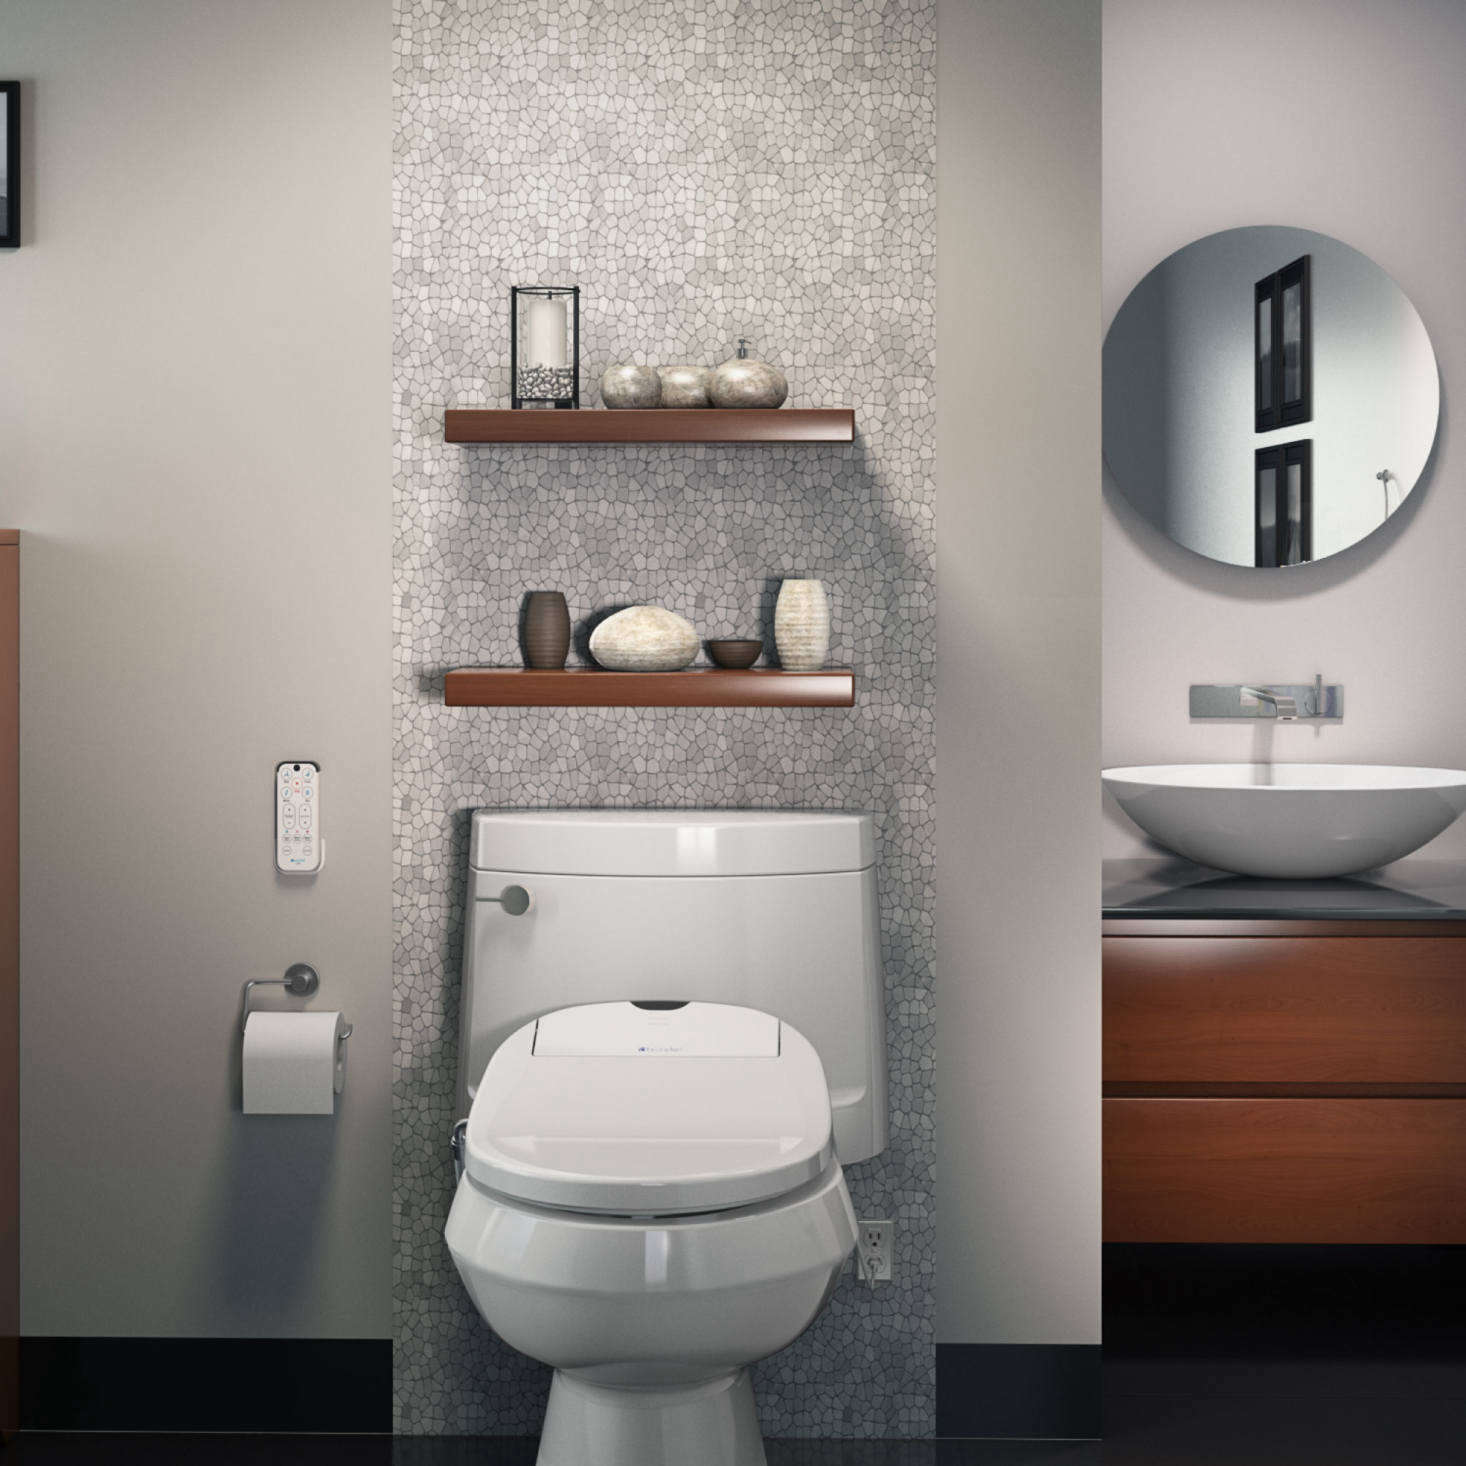 Brondell's Swash Collection Brings Japanese Luxury to the American Bathroom (Plus a Discount Offer)